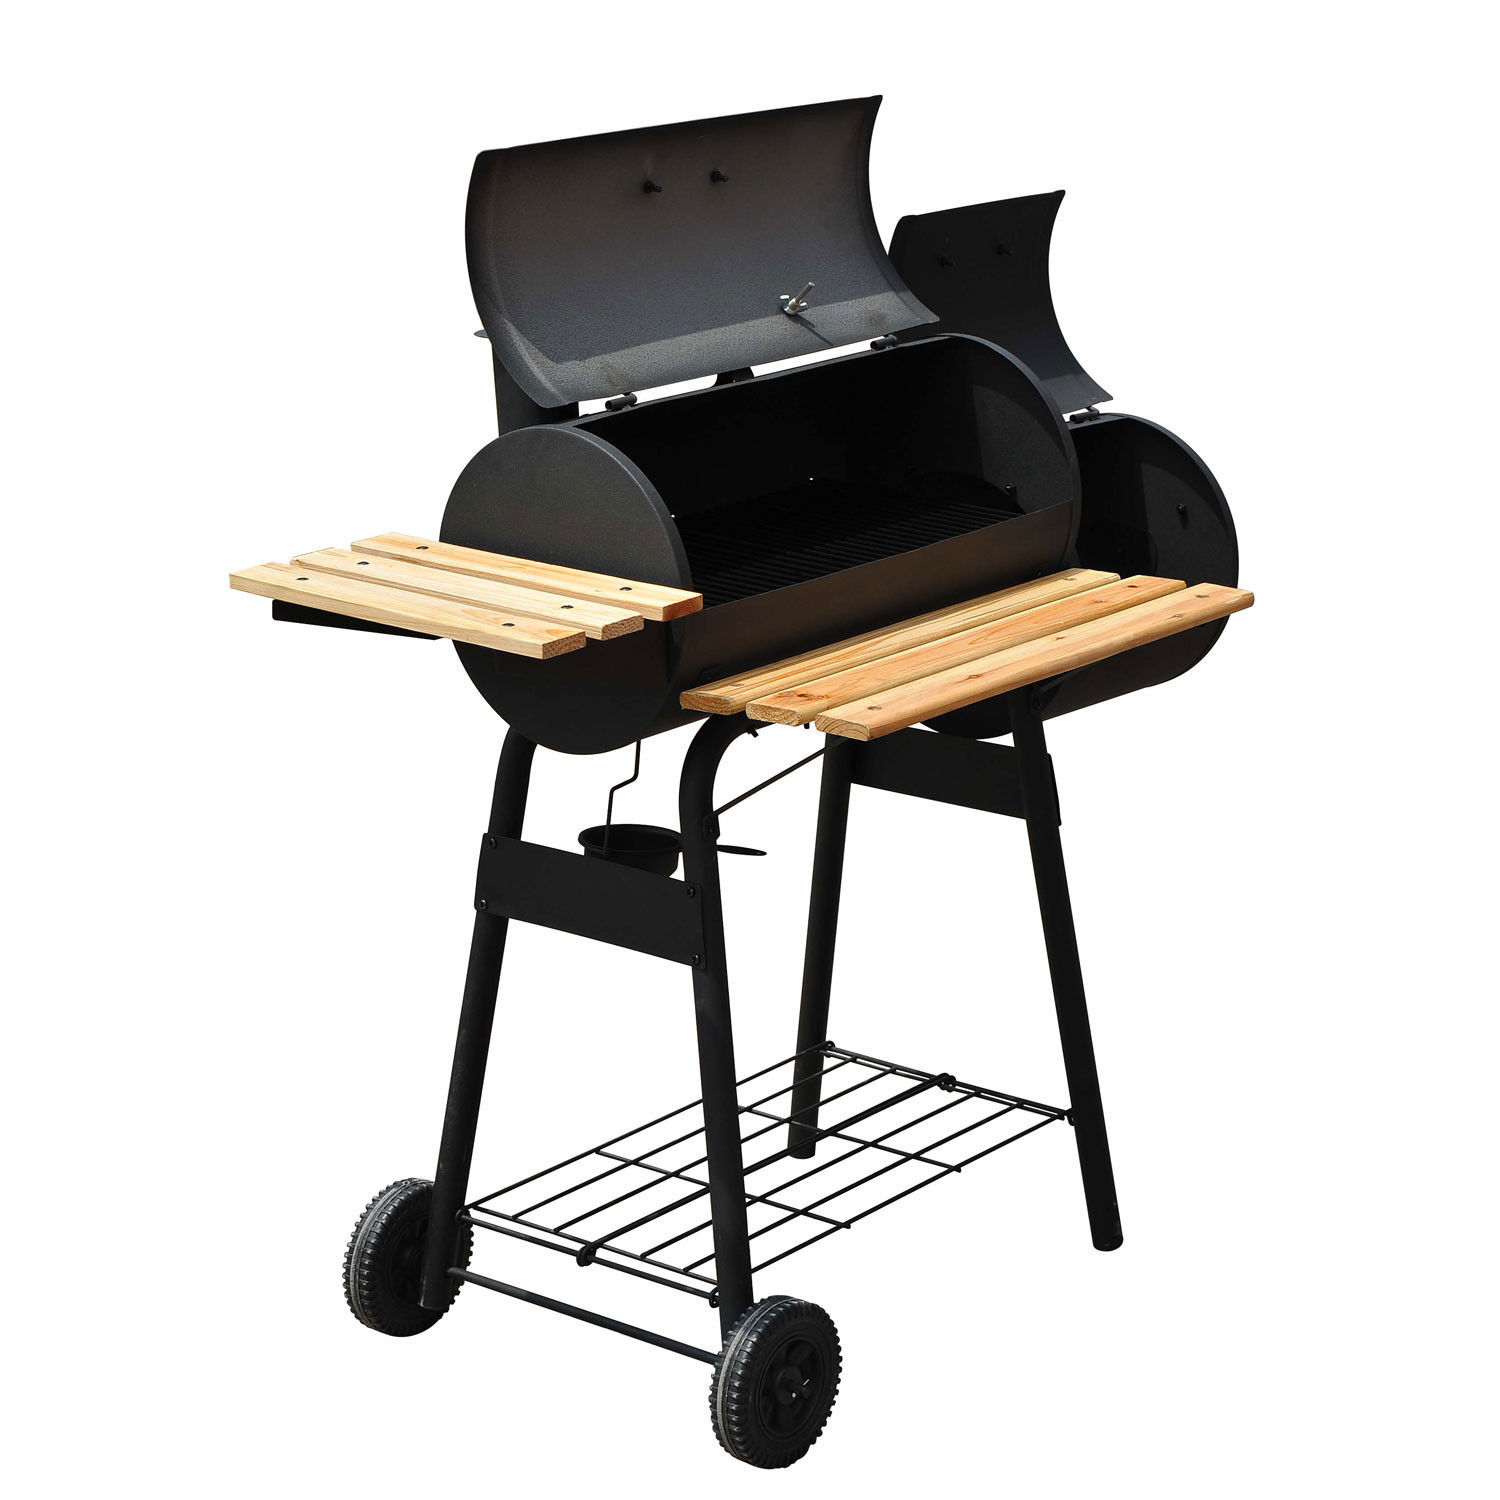 Charcoal Barbecue Grill Patio Smoker 2